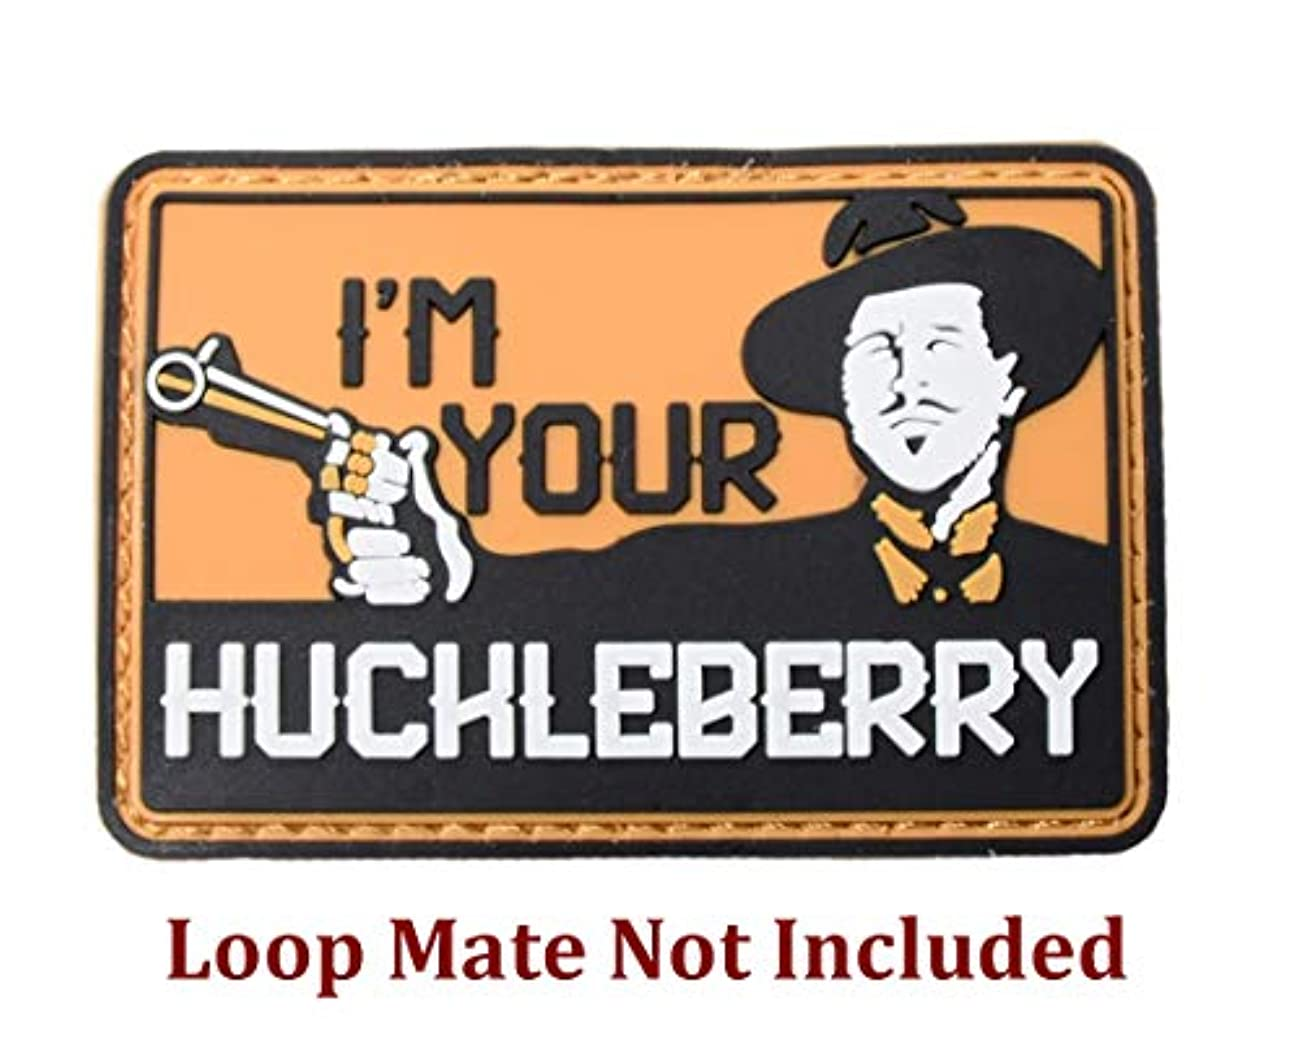 I'm Your Huchleberry Funny Tactical Morale Patch 3D PVC Rubber Badge with Hook Fastener